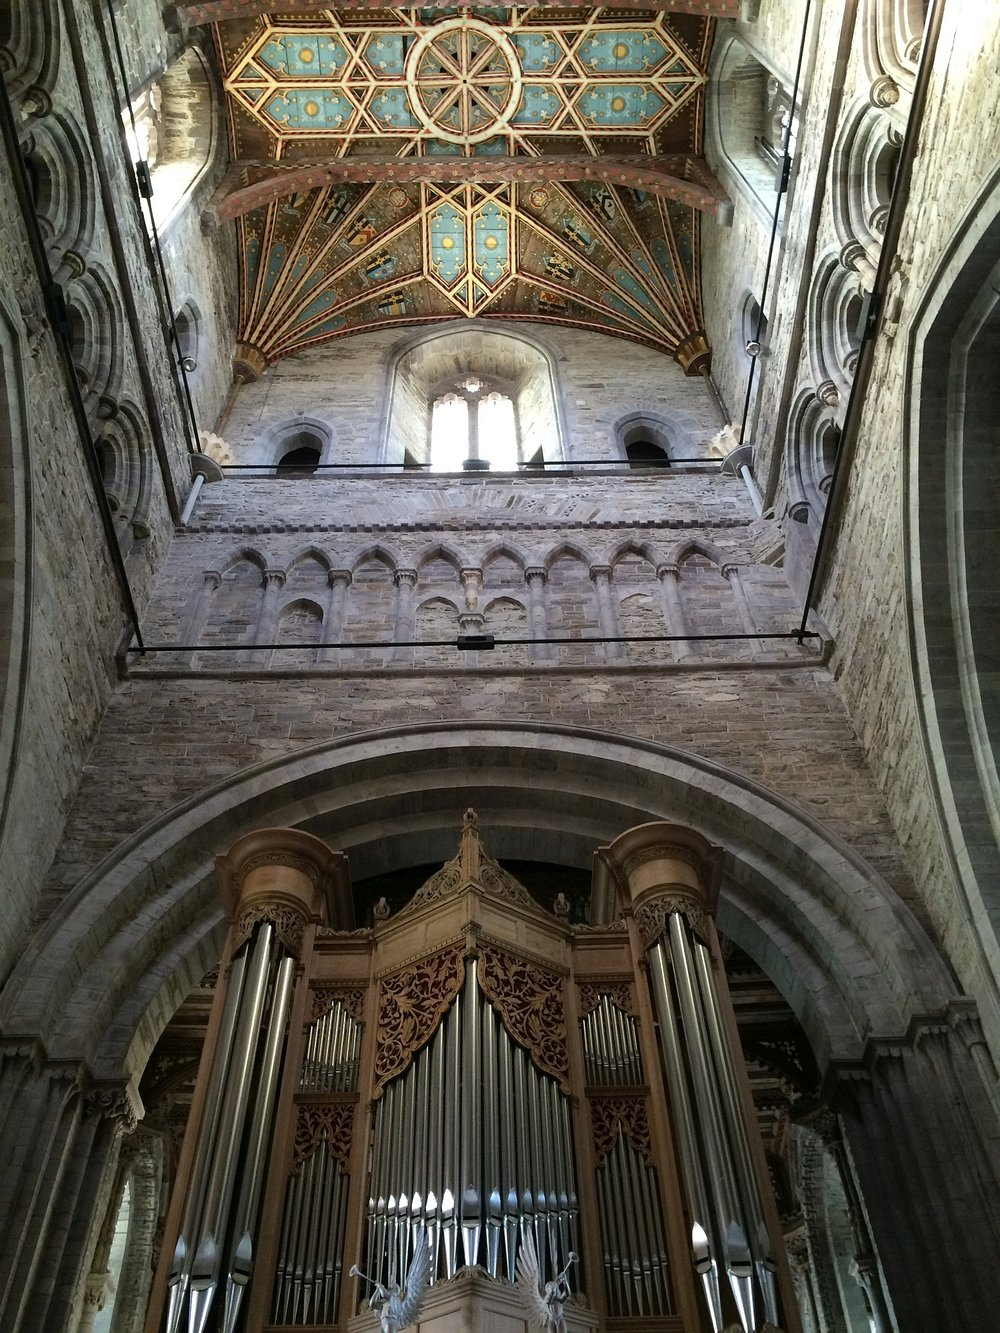 Pipe organ and ceiling, St. David's